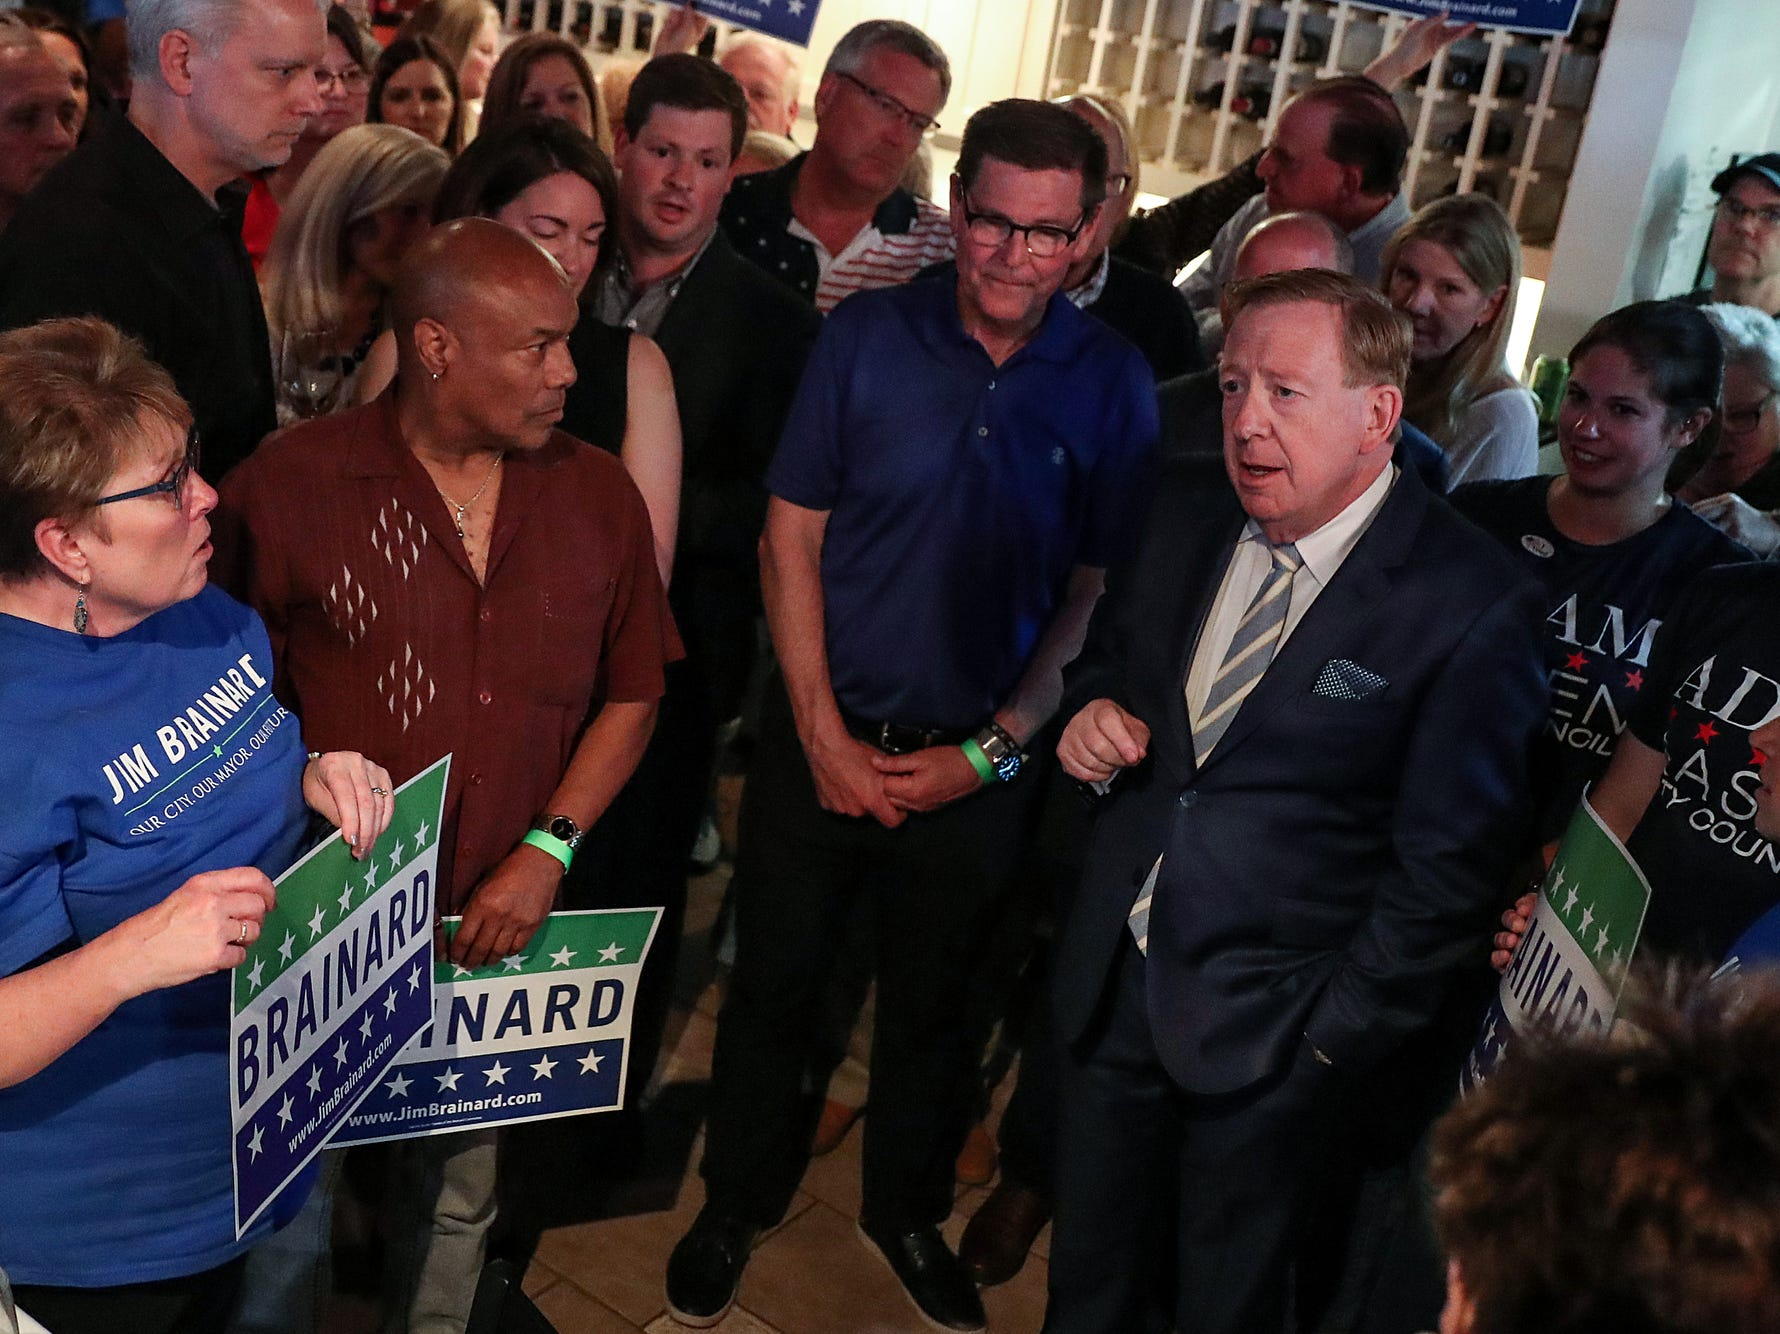 Jim Brainard talks to supporters after clinching the Republican primary nomination for Carmel Mayor at DonatelloÕs Italian Restaurant in Carmel, Ind., Tuesday, May 7, 2019. This is Brainard's seventh term nomination in the Republican primary, defeating challenger Fred Glynn.